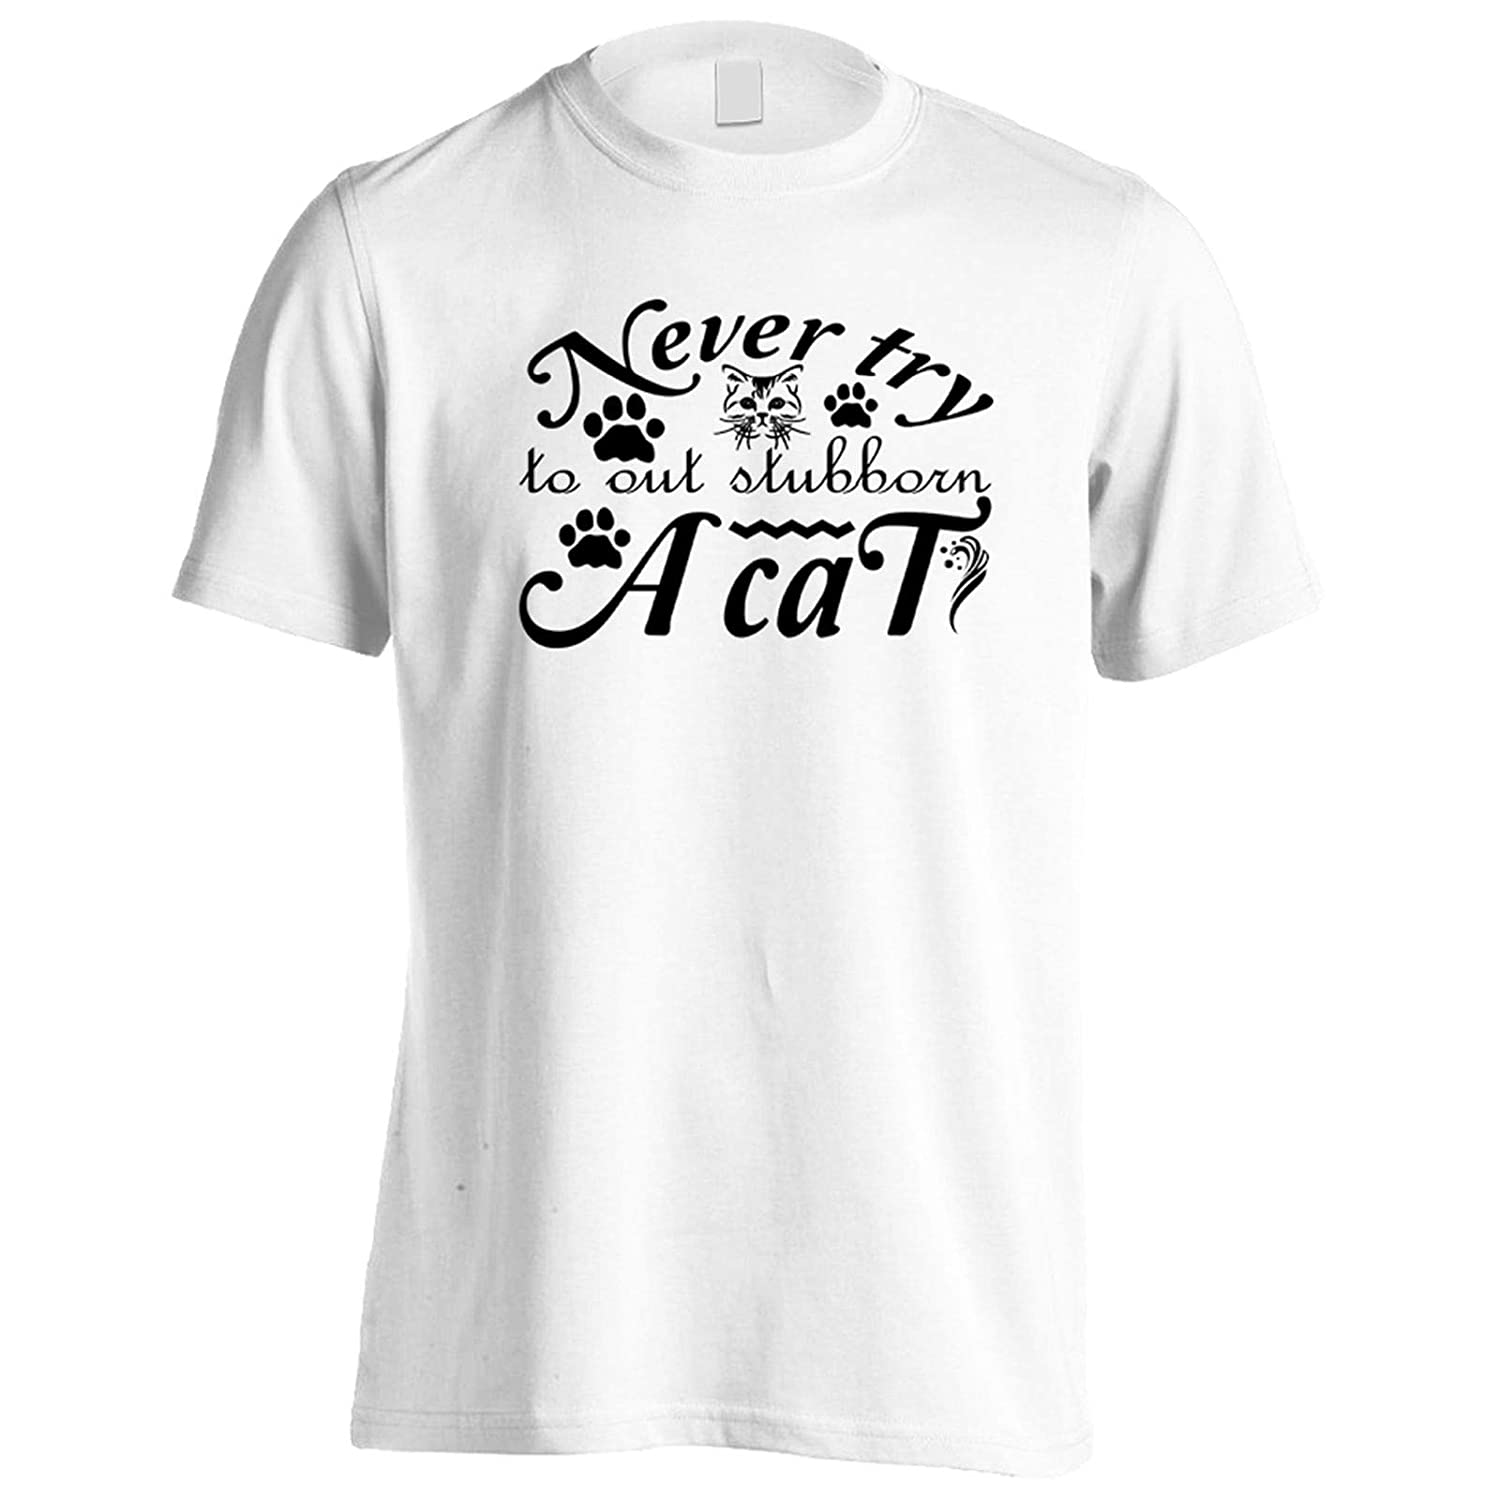 Never Try Out Stubborn Cat Mens T-Shirt Tee gg409m